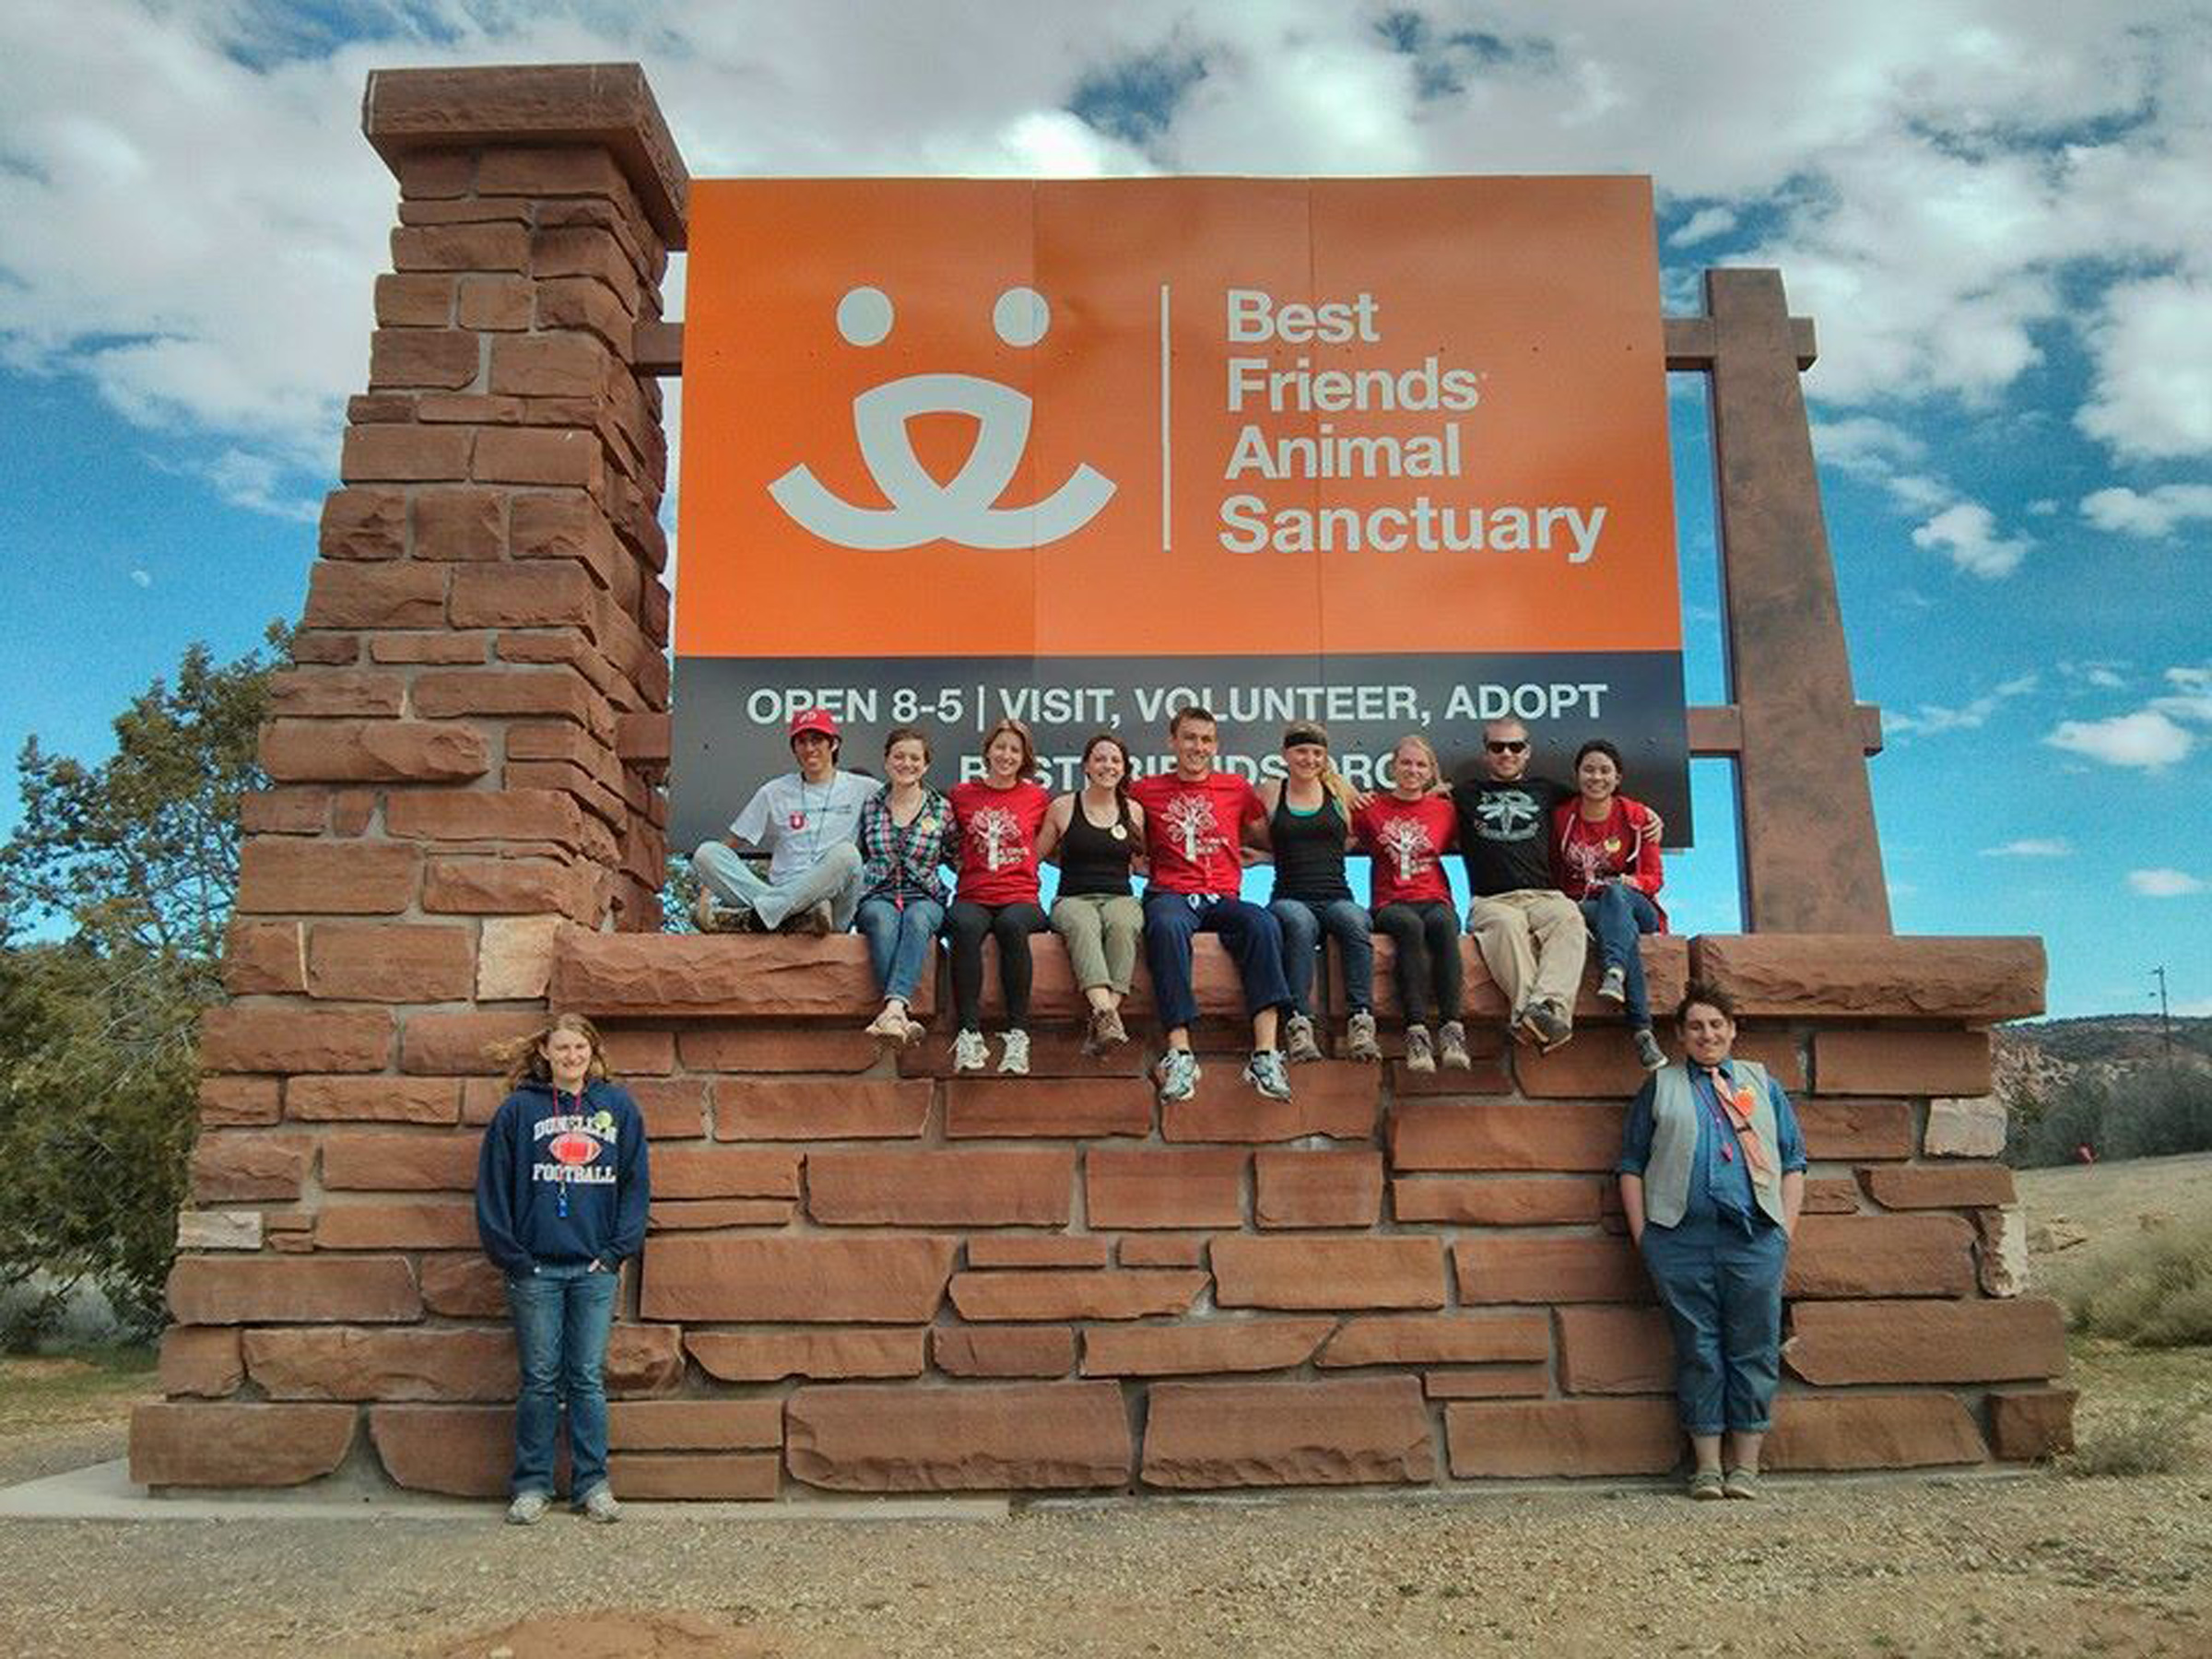 Alternative Break trips travel to the western US and Canada, including within Utah. Students on the Kanab trip spend the week learning and volunteering at Best Friends Animal Sanctuary.